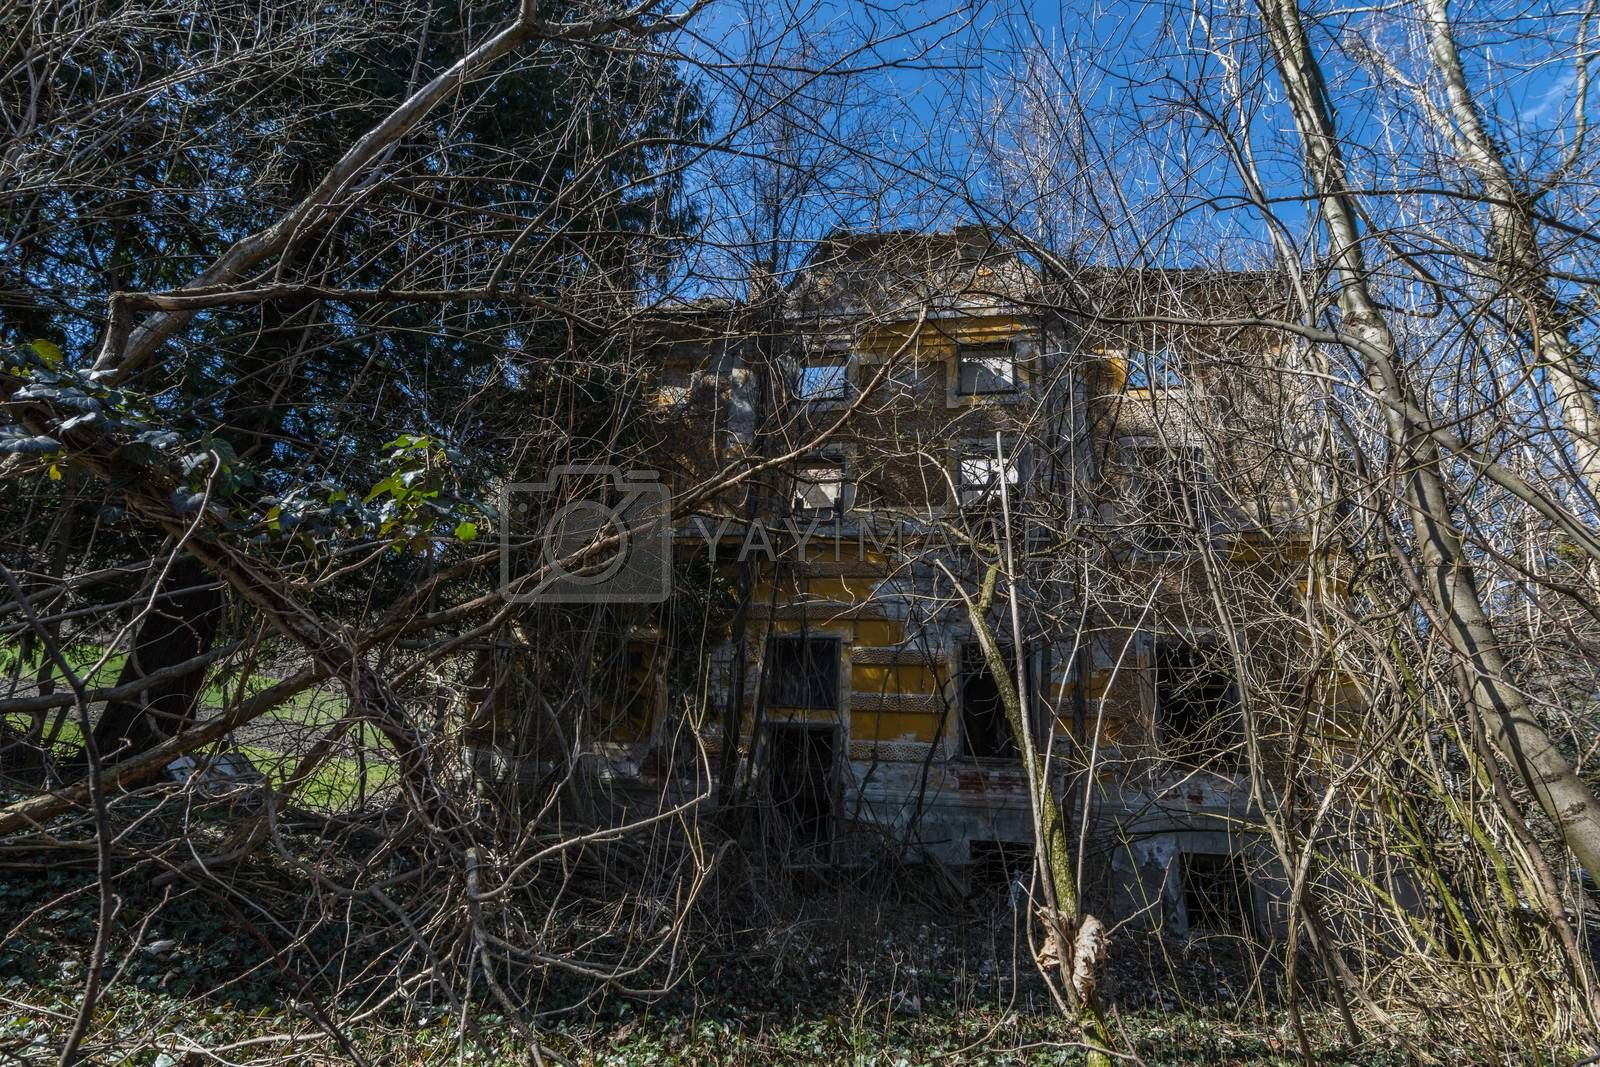 Old dilapidated ruin of a yellow house in the forest